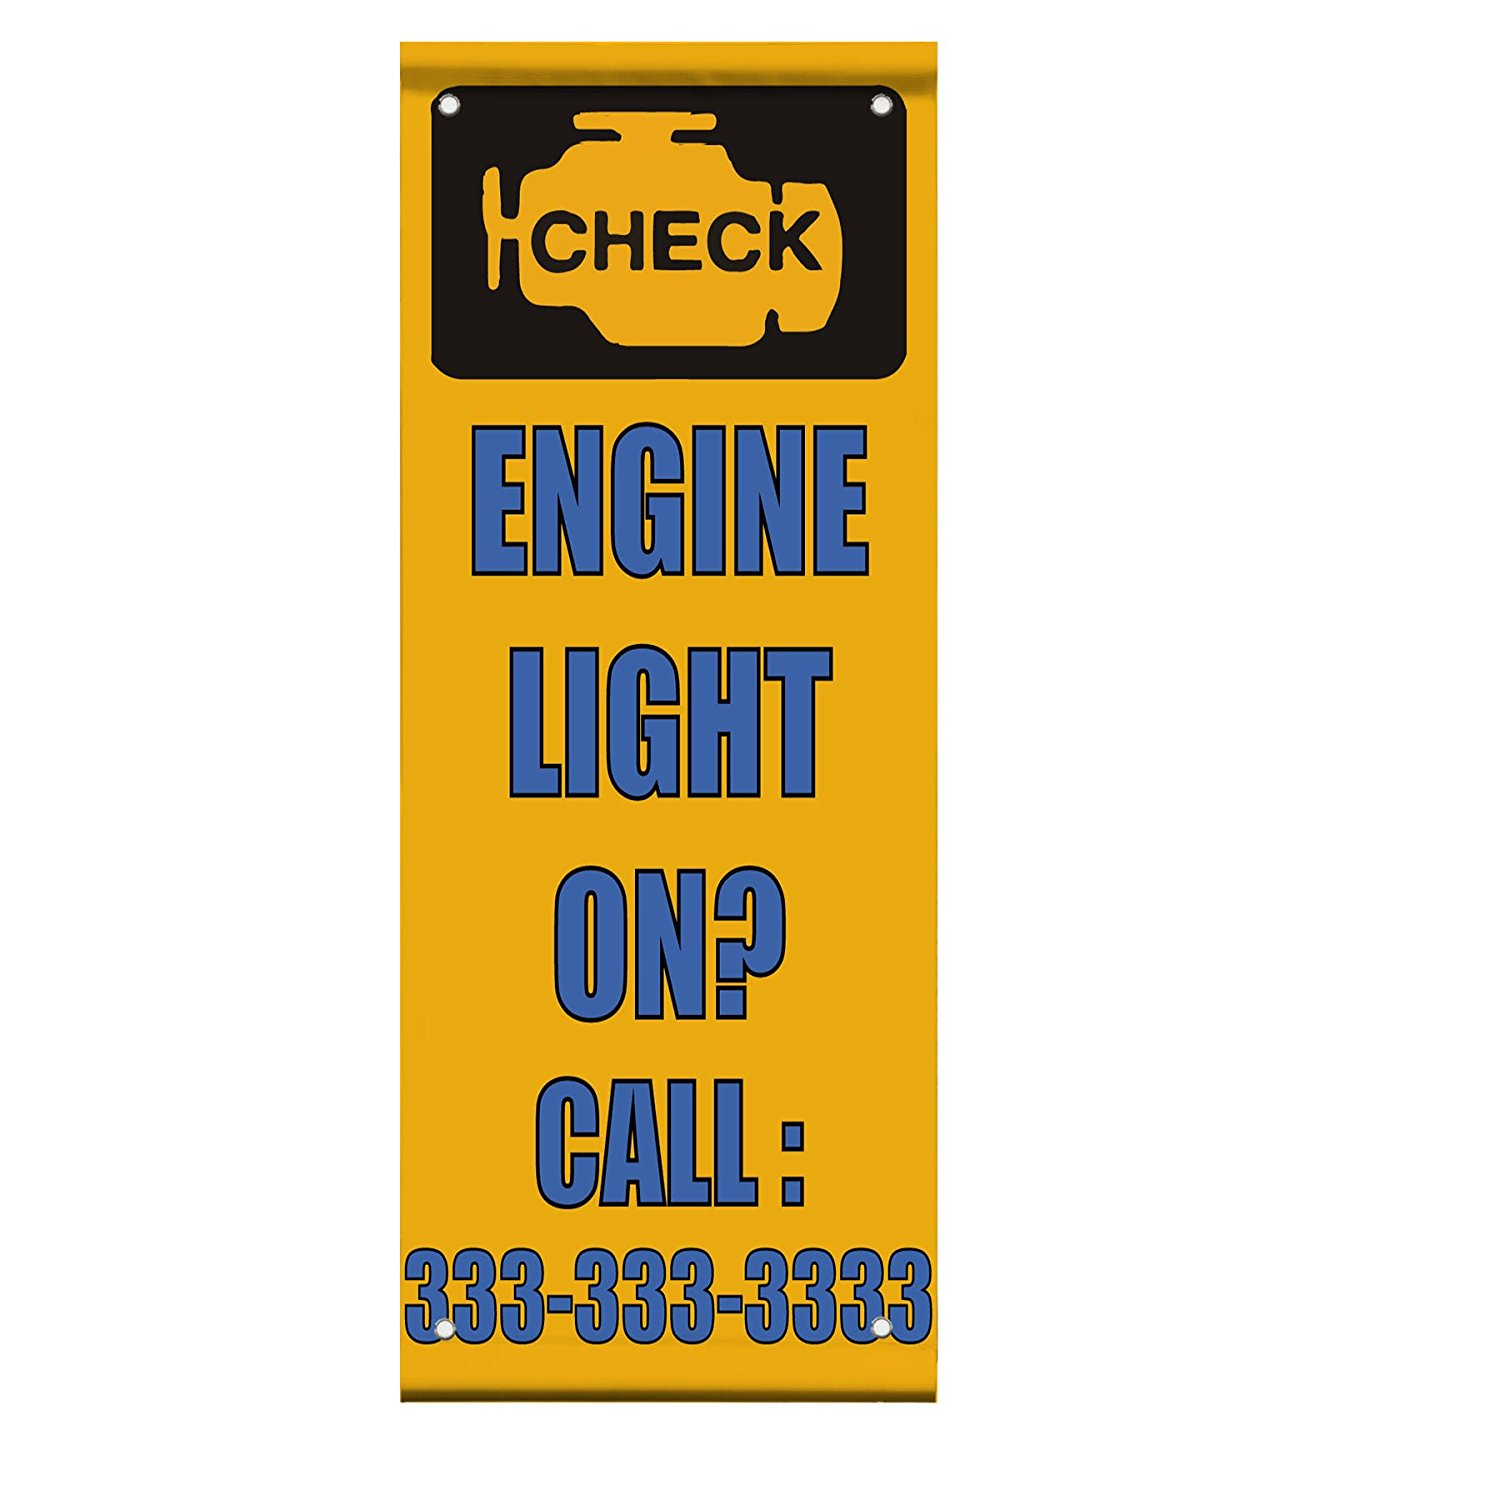 Engine Light On? Custom Number Double Sided Vertical Pole Banner Sign 24 in x 36 in w/ Wall Bracket